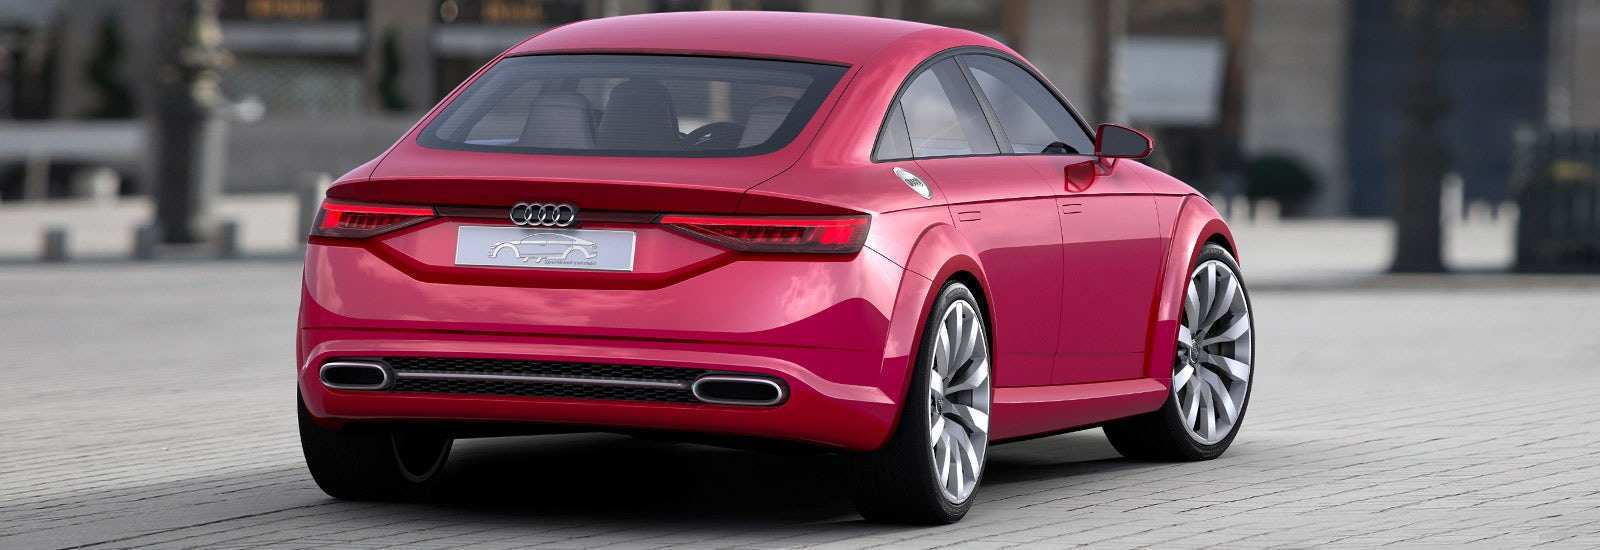 27 Great Audi A3 2019 Uk Review by Audi A3 2019 Uk